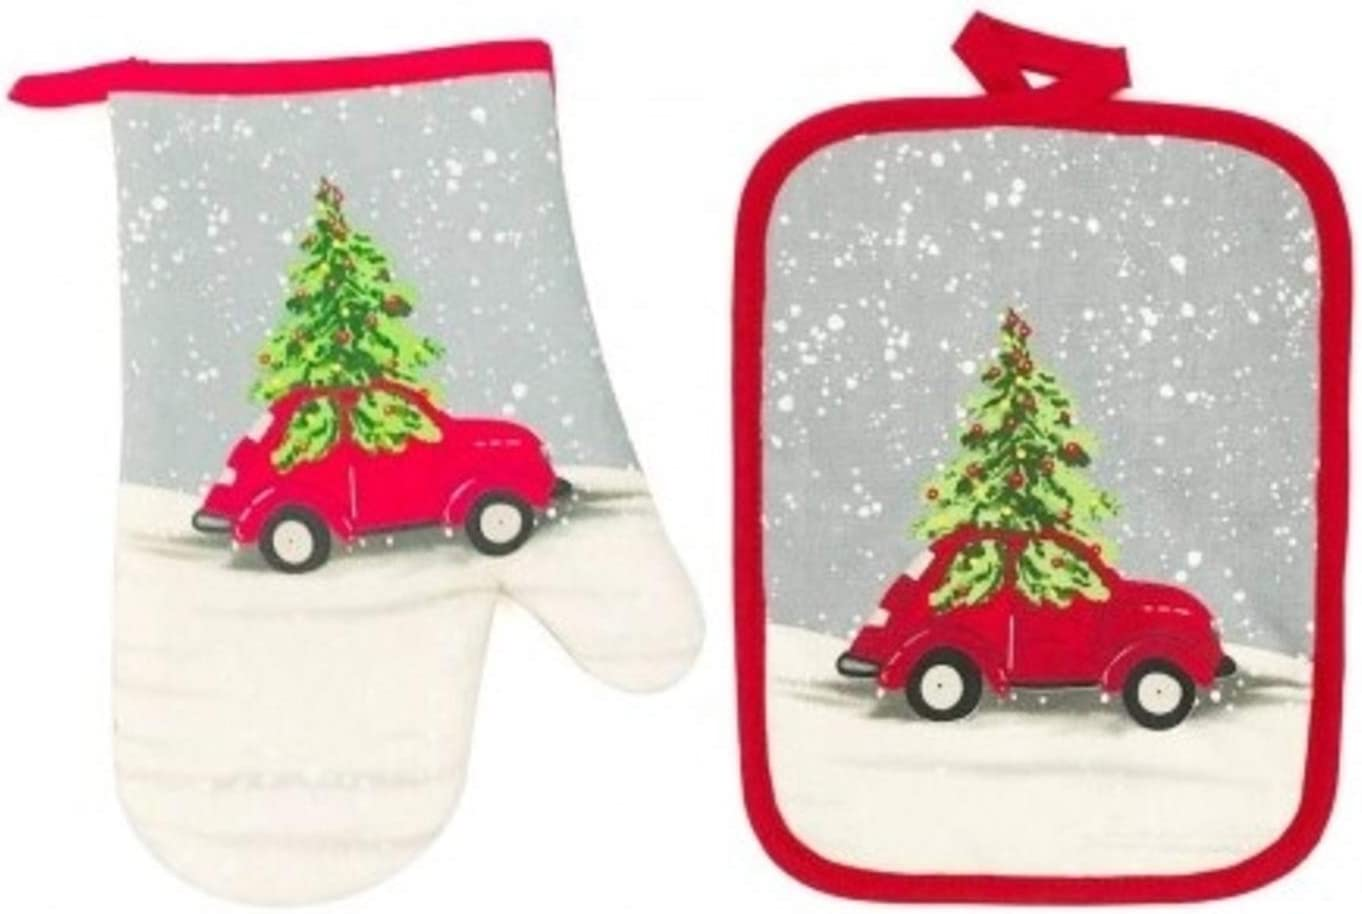 Retro Red Car with Tree Christmas Oven Mitt and Potholder Set, Holiday Kitchen Decor Baking Pot Holder Bundle (2 Pieces)